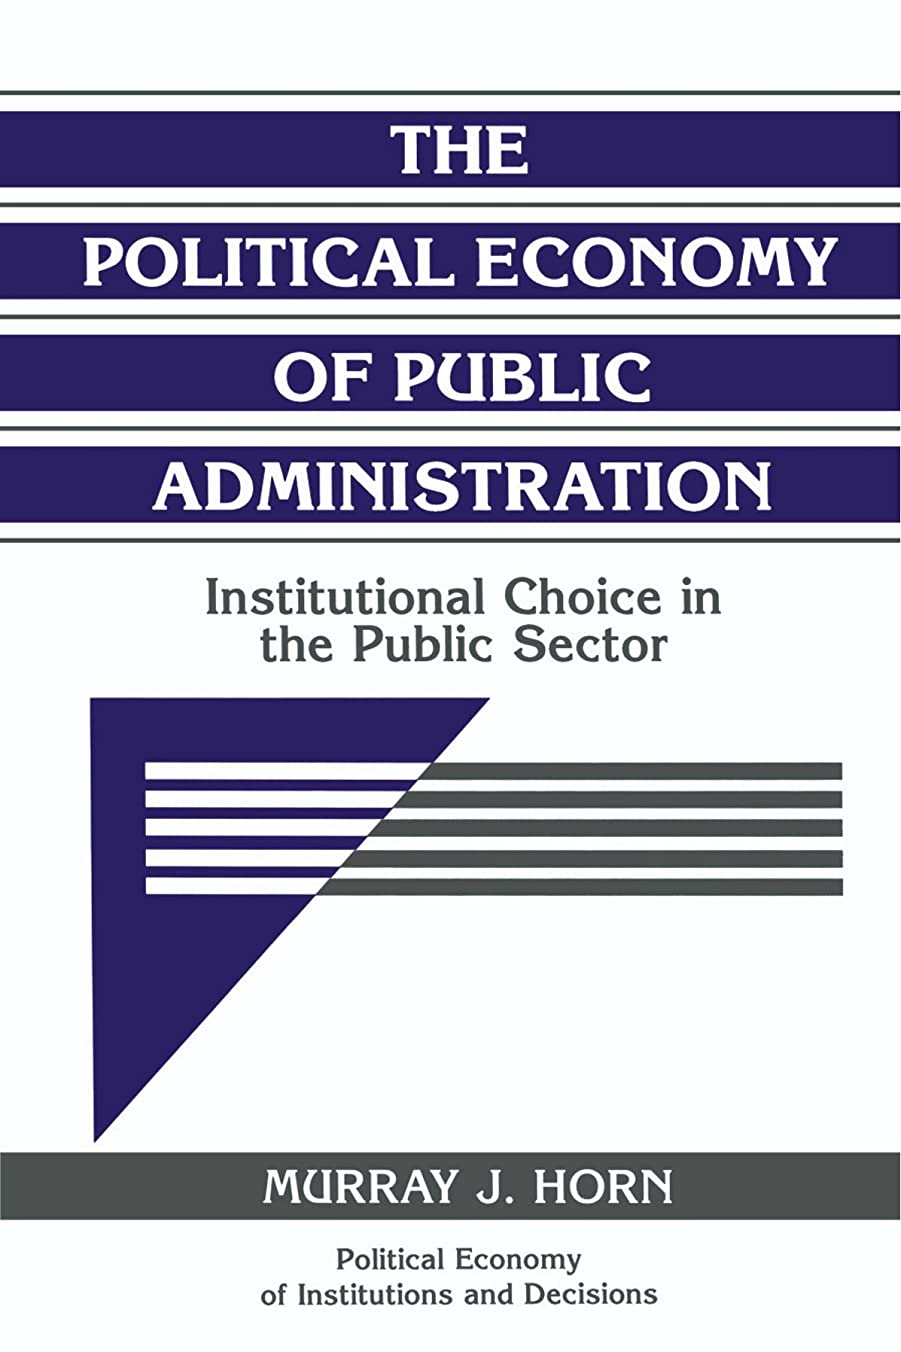 ペパーミント罪エンジニアThe Political Economy of Public Administration: Institutional Choice in the Public Sector (Political Economy of Institutions and Decisions)